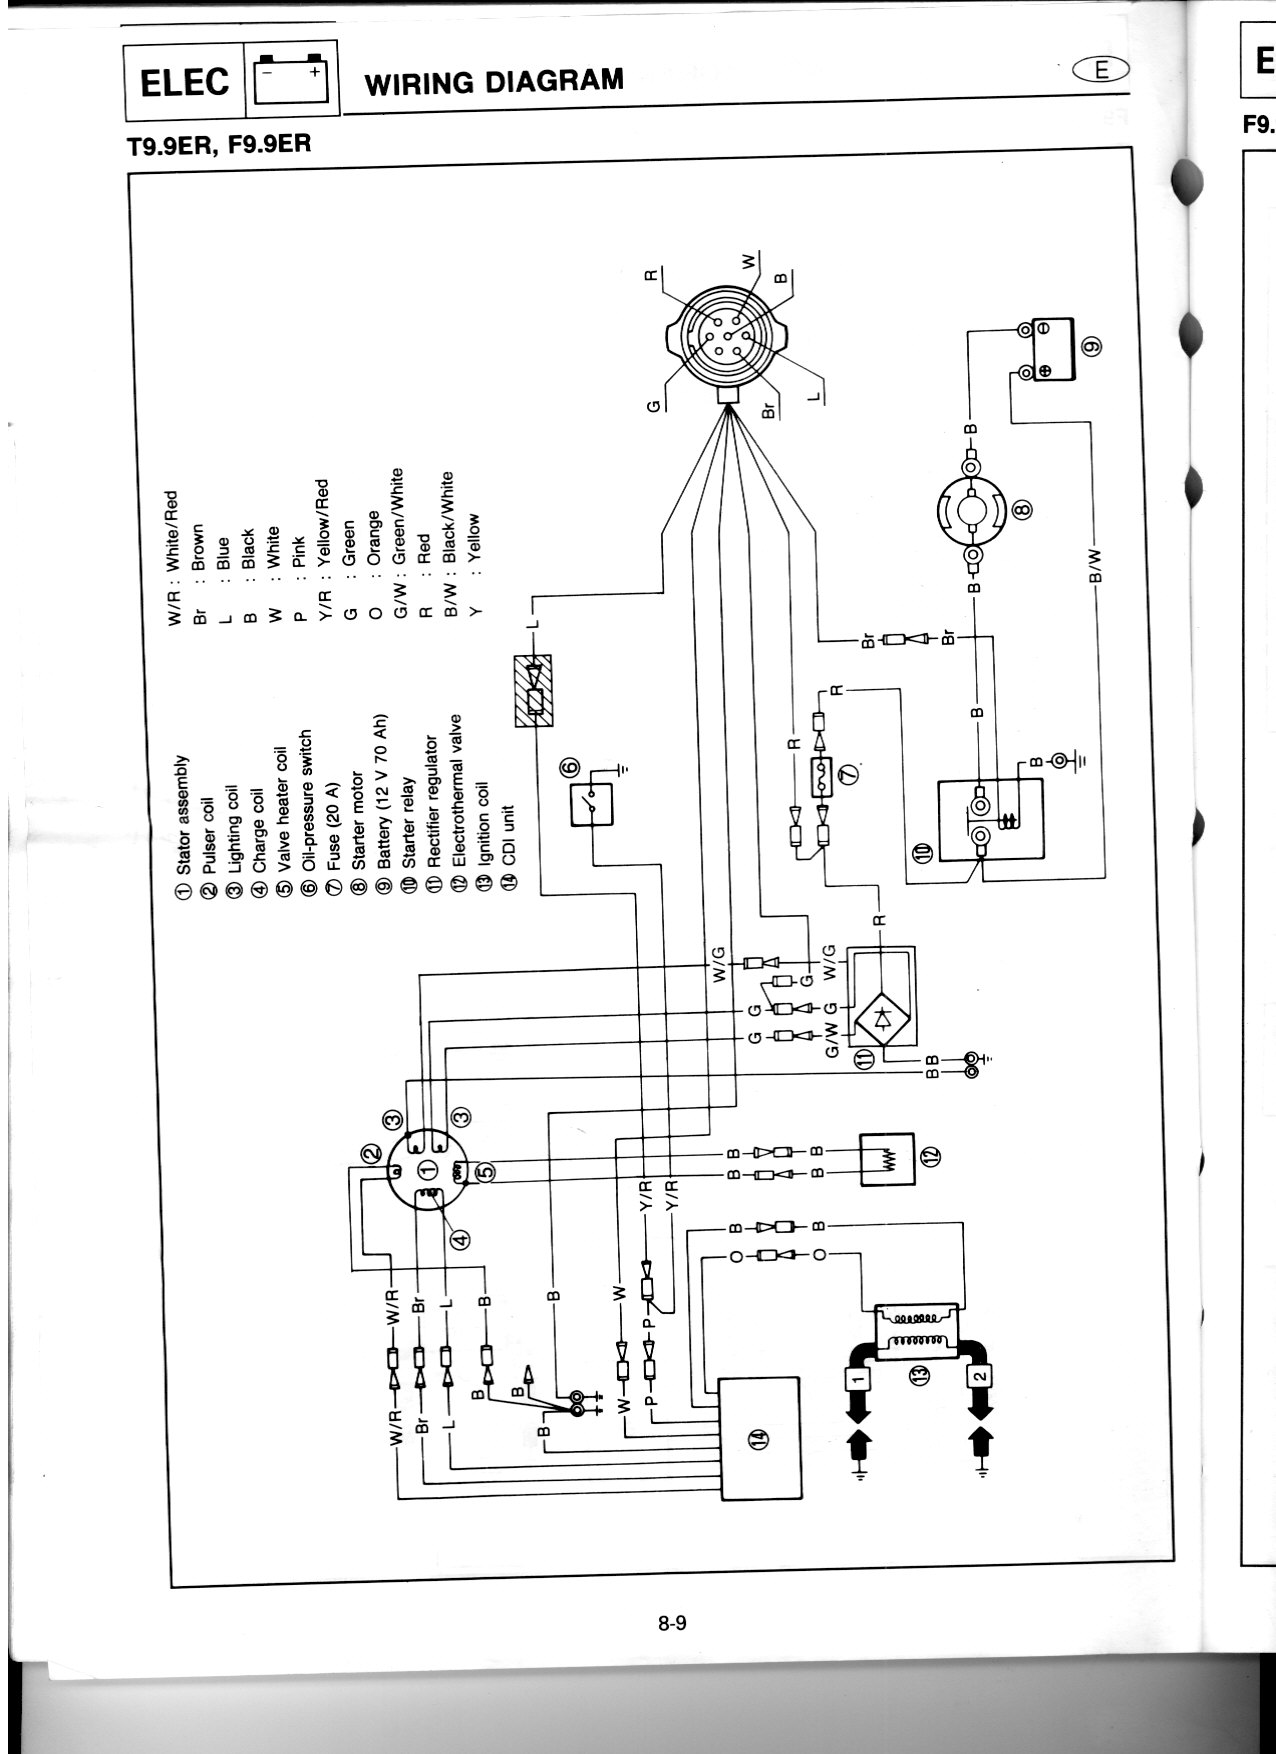 T9.9_Wiring_Diag t9 9 electrical wiring diagram needed pdq owners forum yamaha outboard wire diagram at readyjetset.co